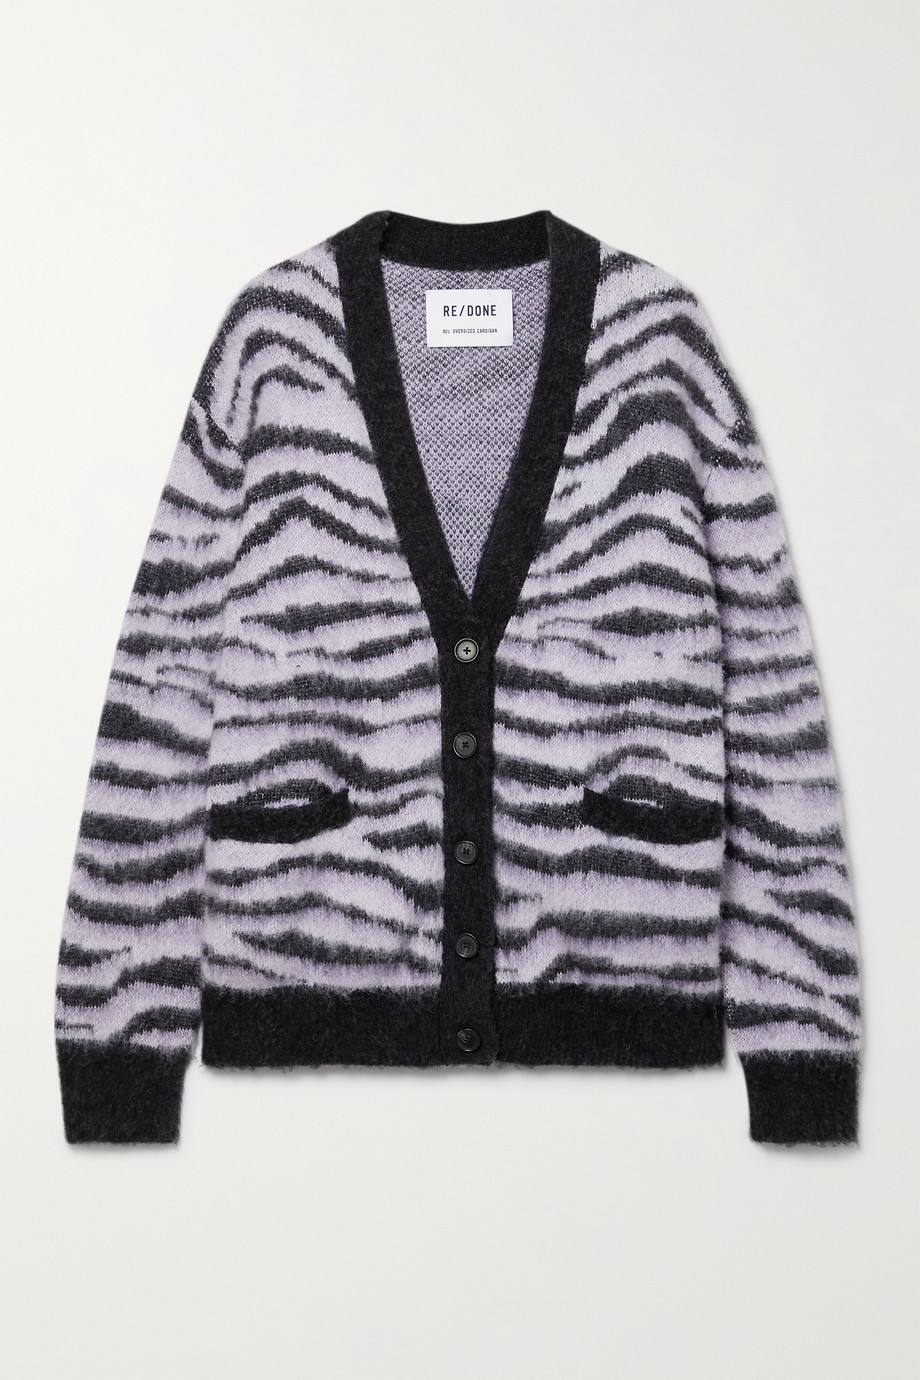 RE/DONE 90s tiger-intarsia cardigan